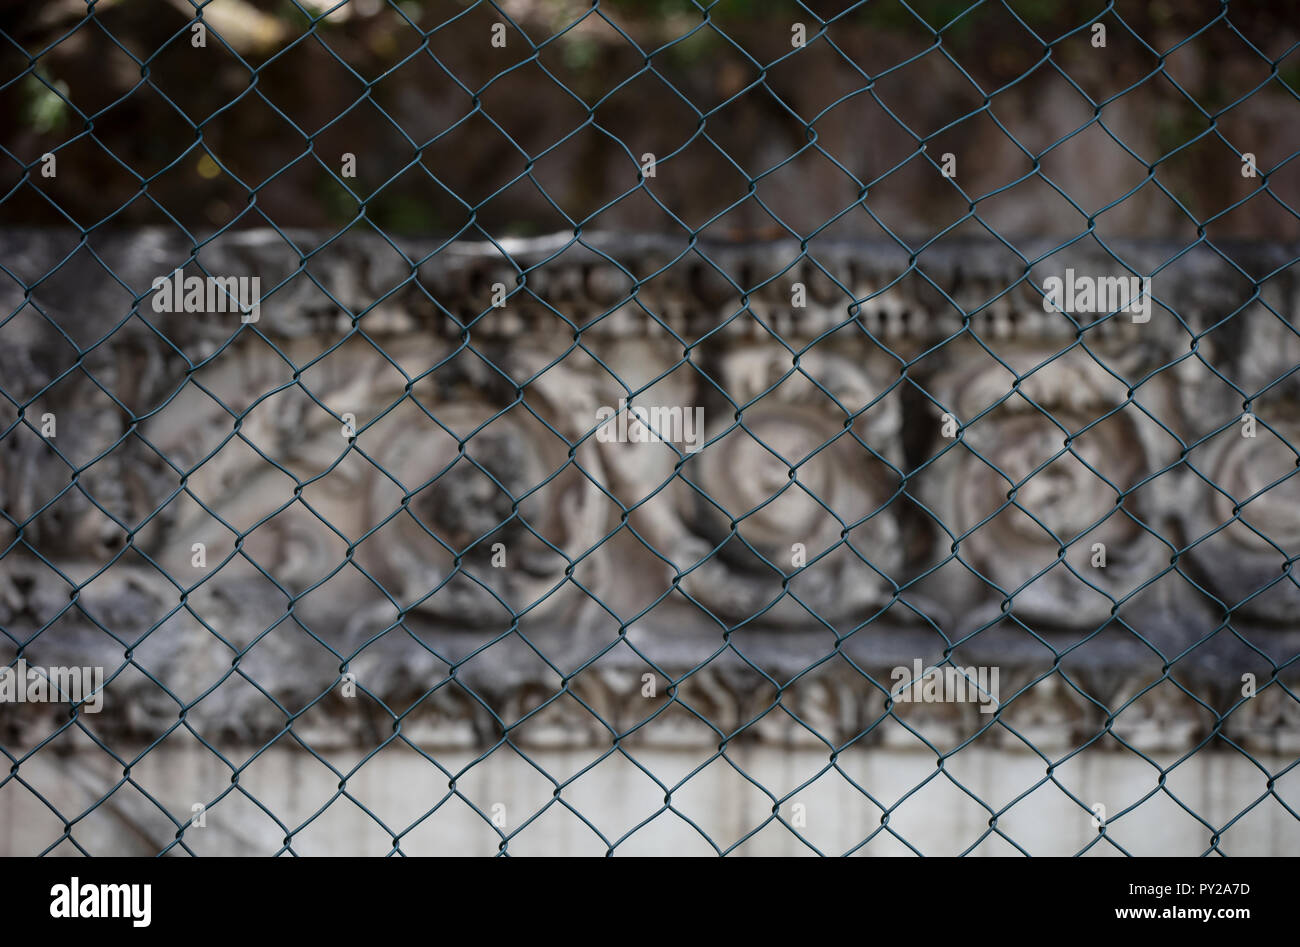 An Roman entablature carved in marble behind a wire fence, locked away for security. The entablature has not been restored and is lying on the ground. - Stock Image